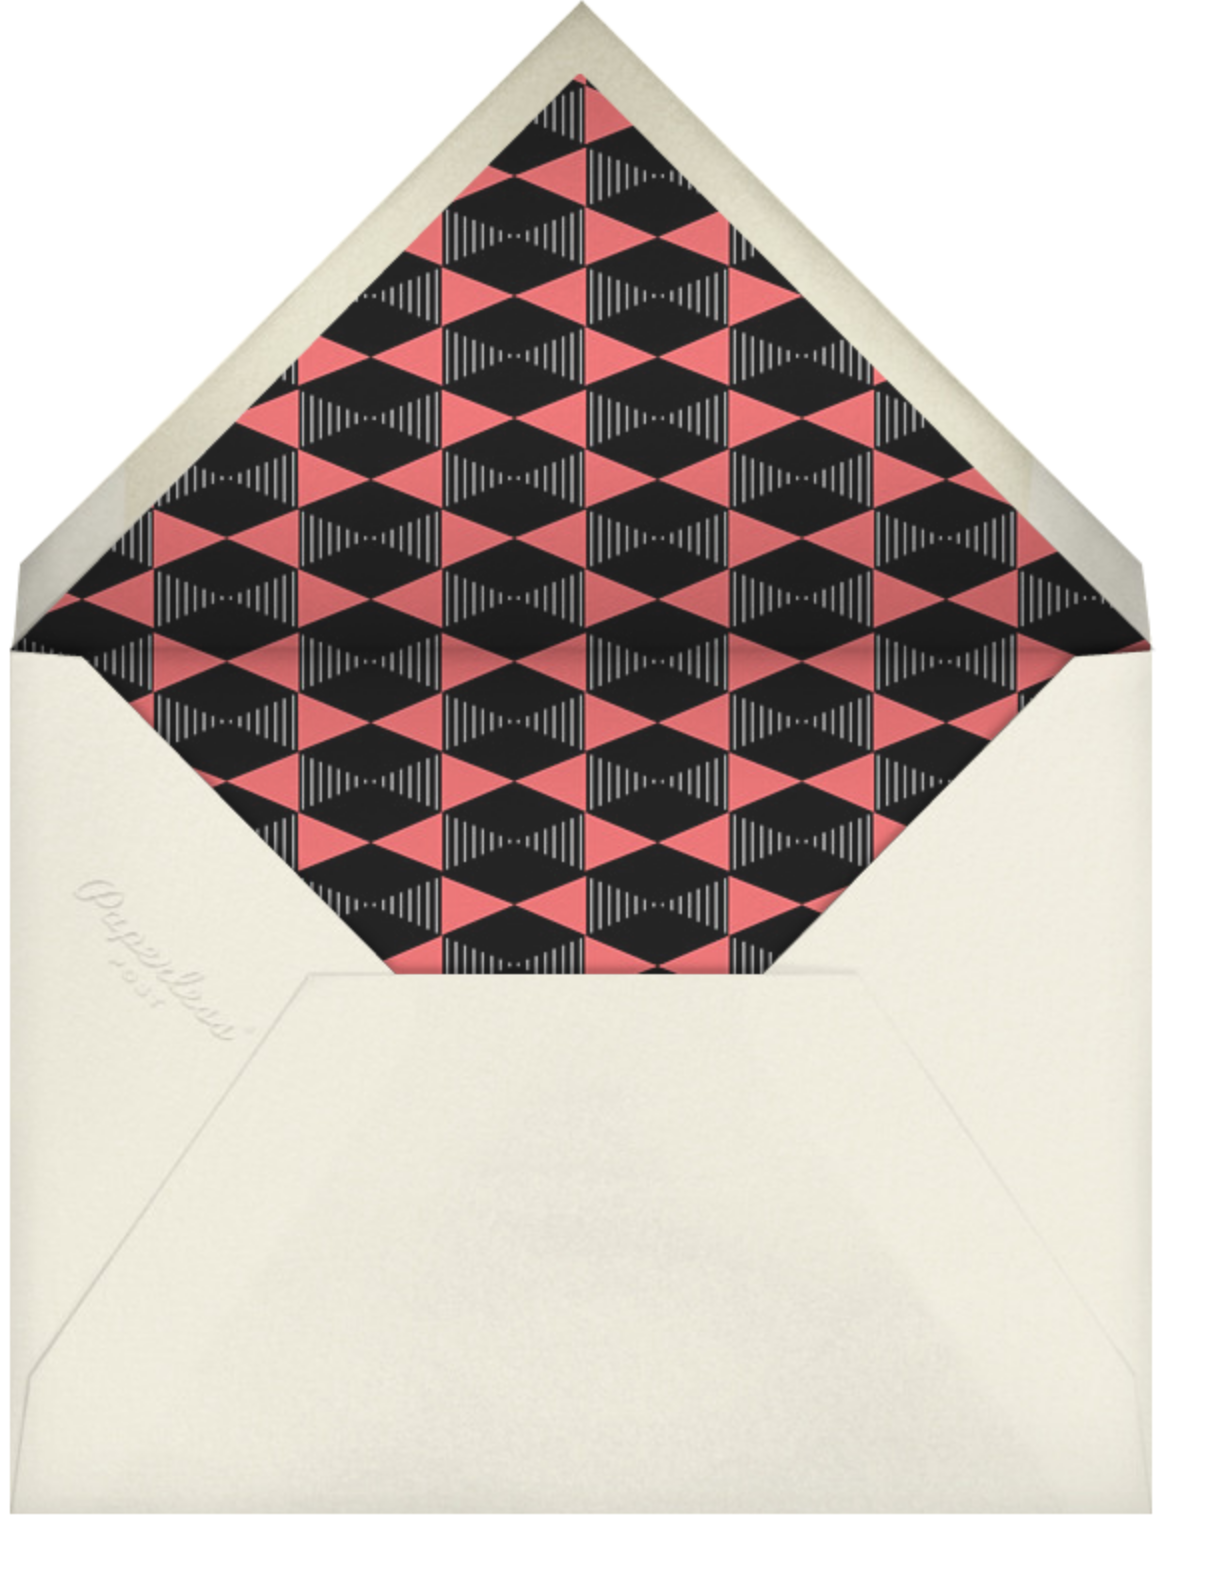 Plaza Square - Coral - Paperless Post - Moving - envelope back